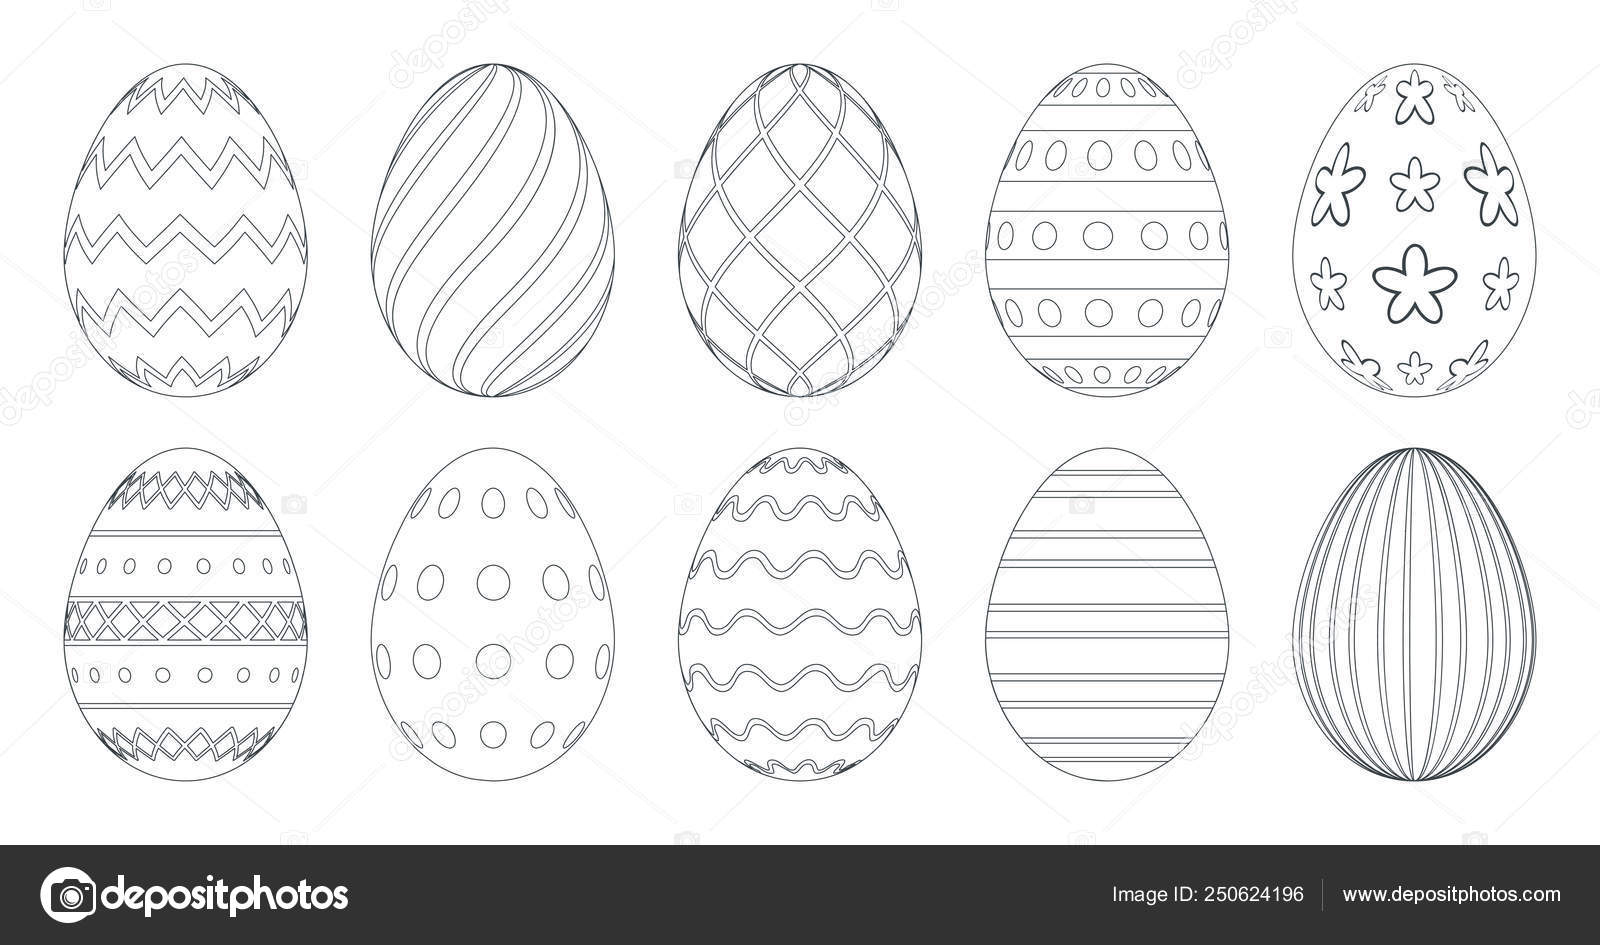 Easter eggs for coloring book. Set of black and white easter eggs isolated  on a white background. 10